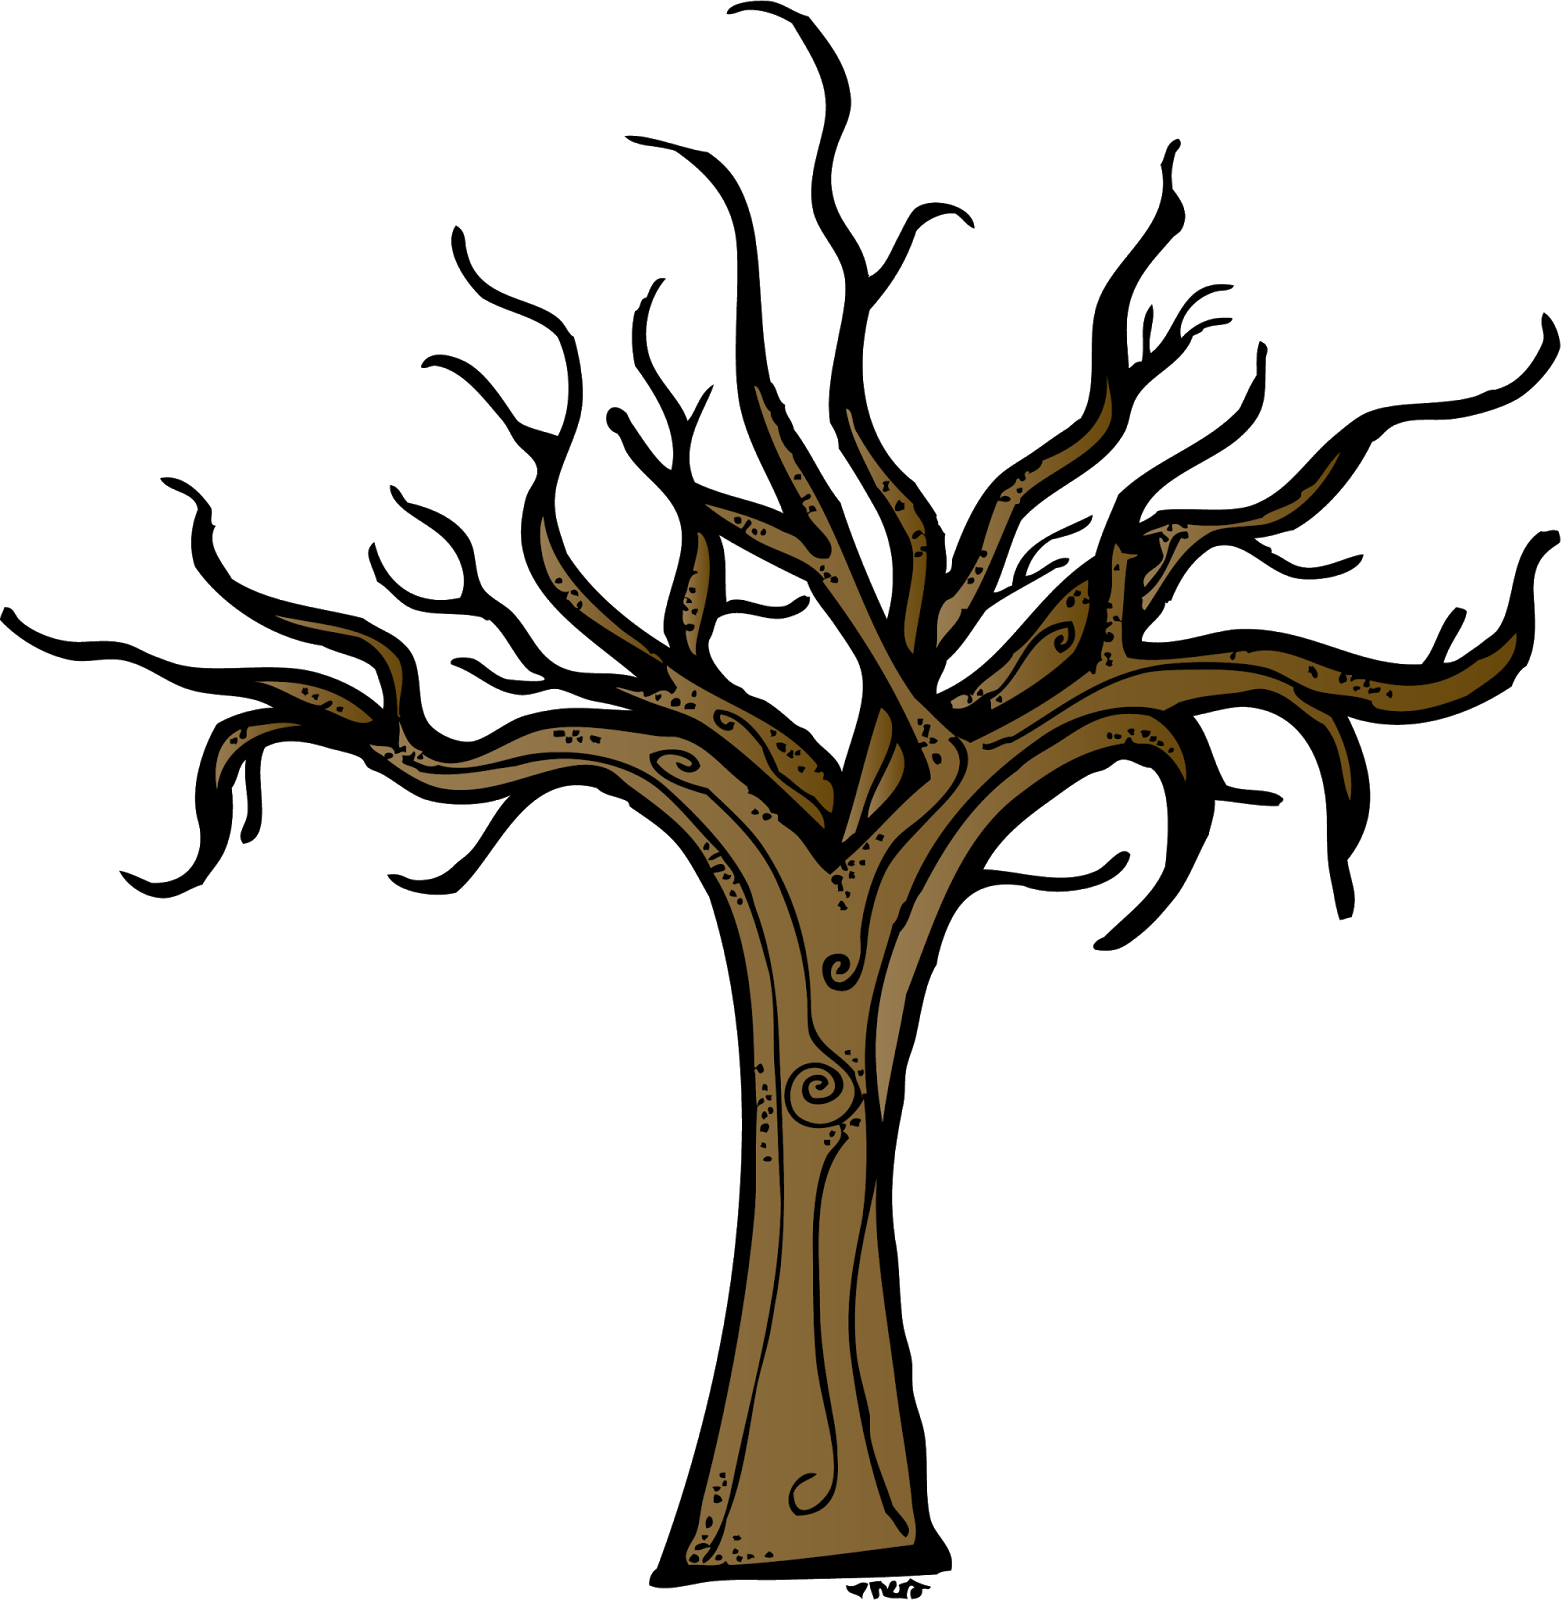 Dying tree clipart clip freeuse library Dead Tree Clipart Free Download Clip Art - carwad.net clip freeuse library